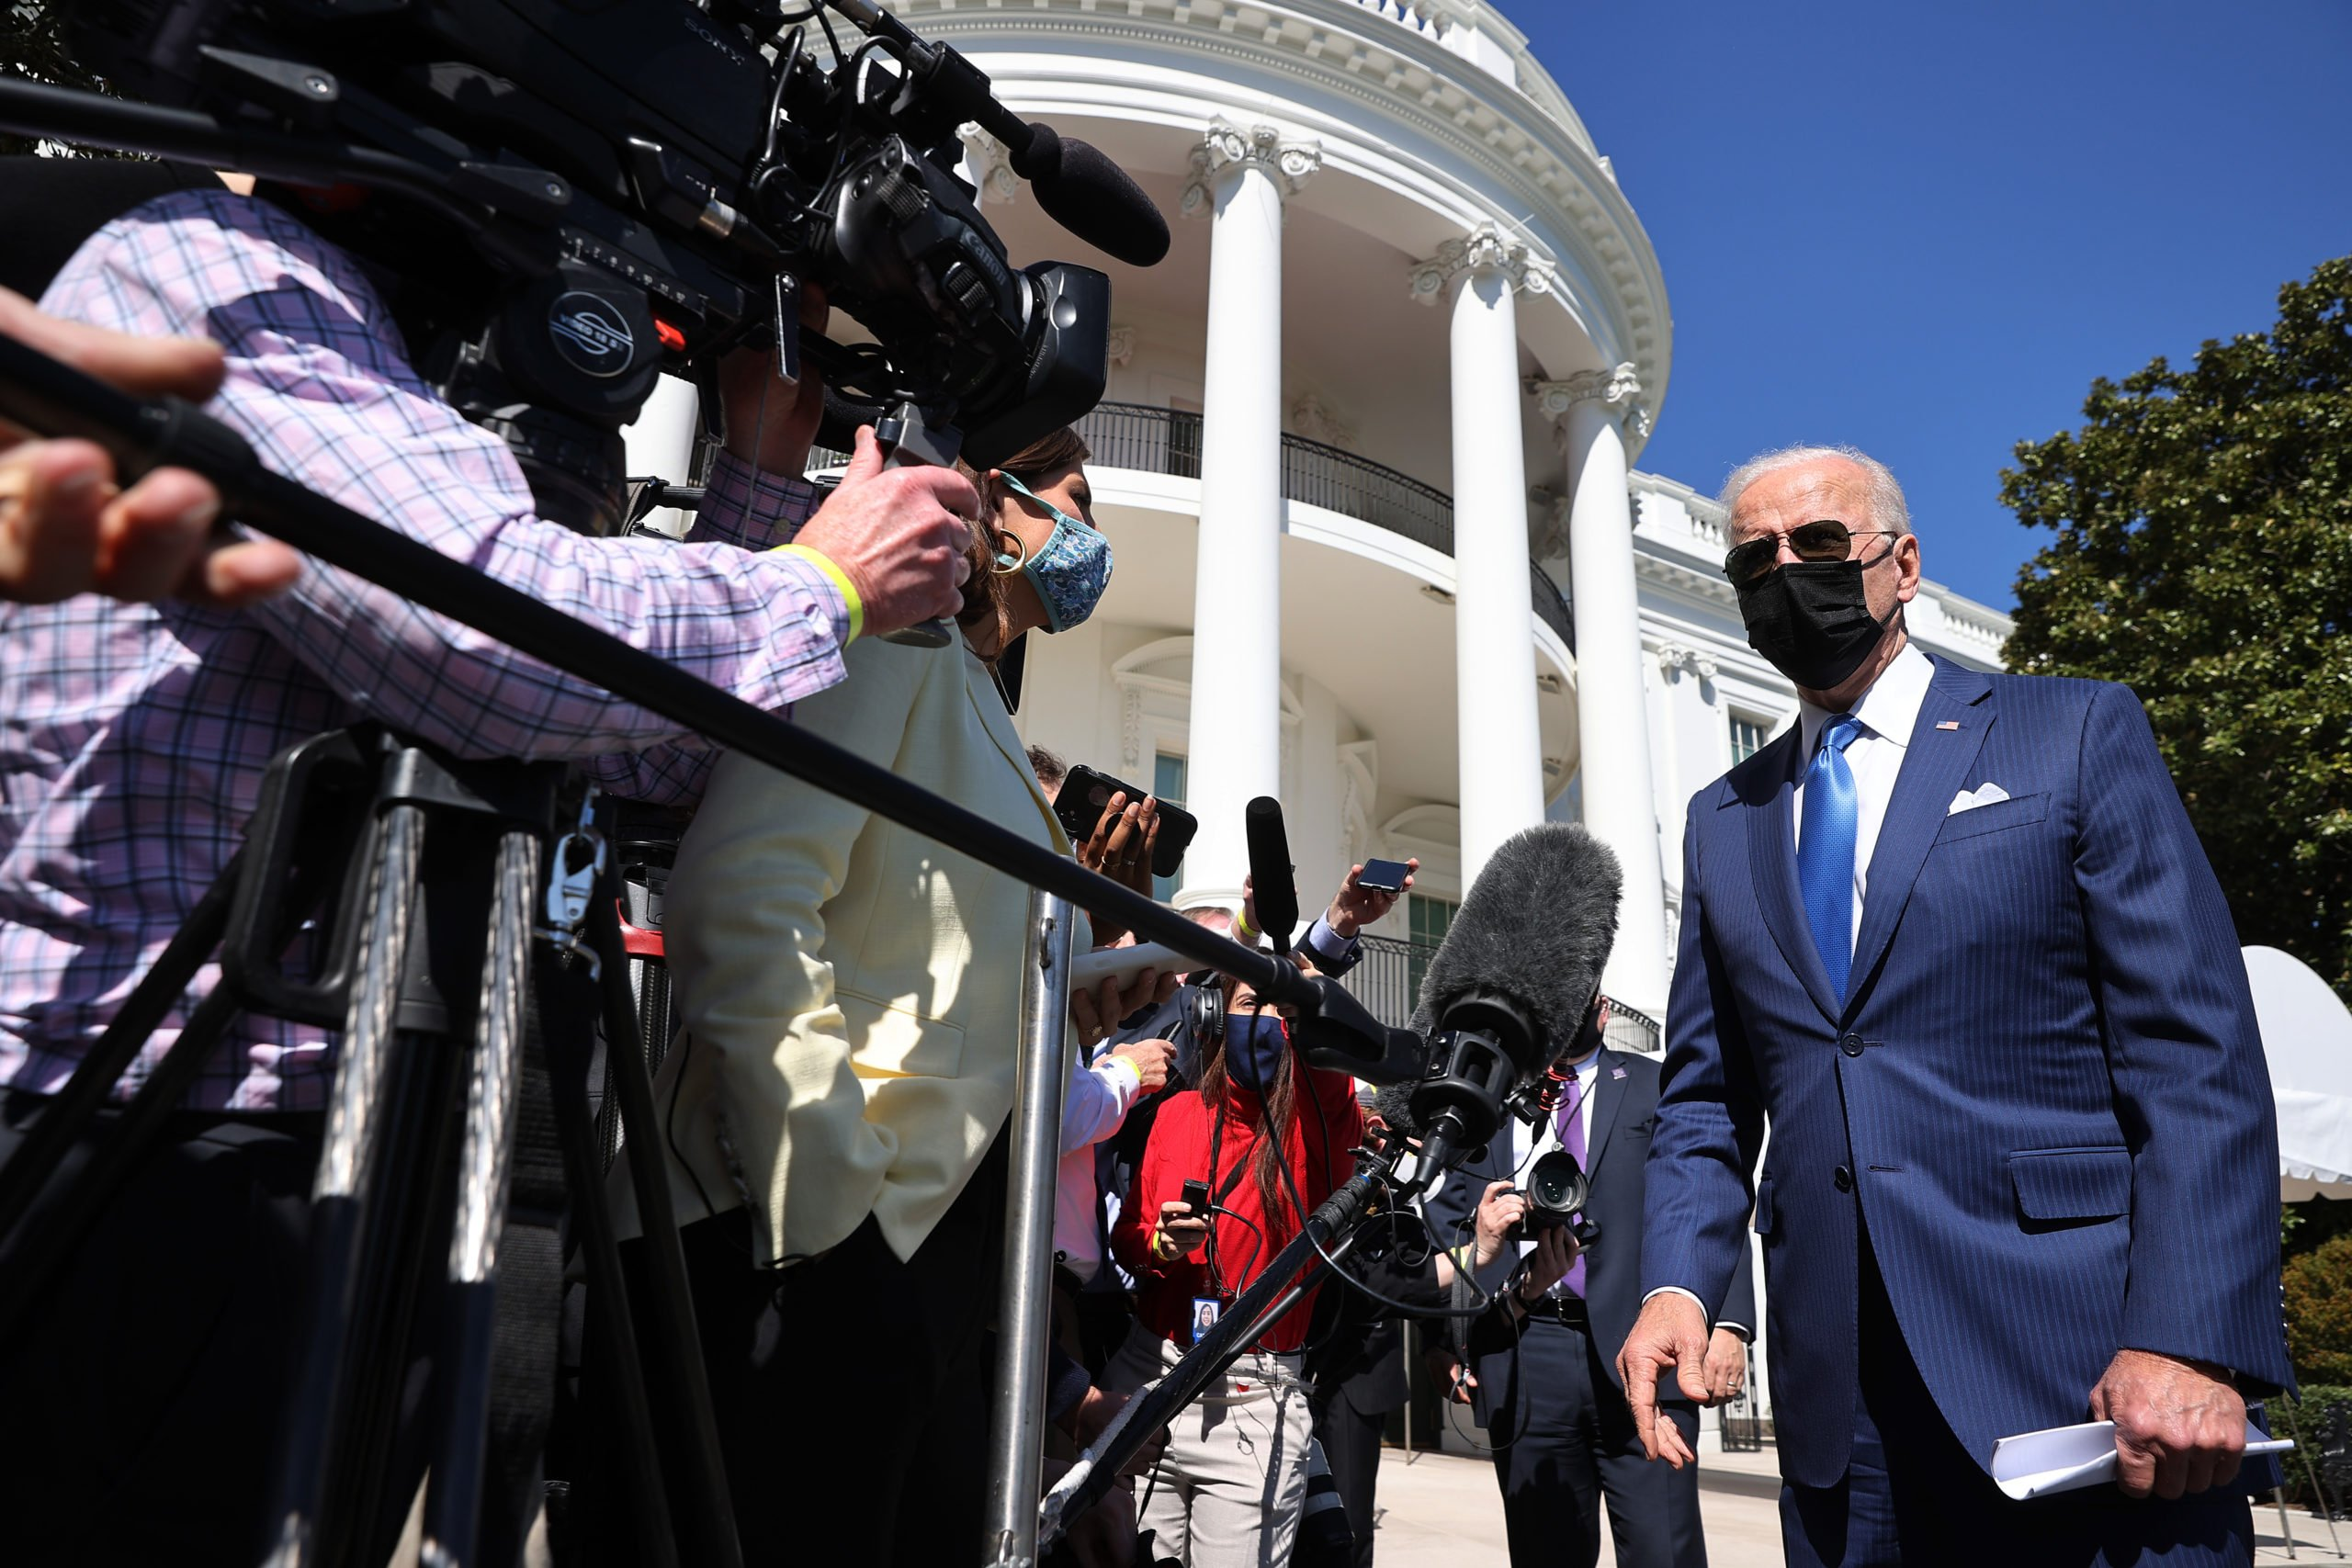 U.S. President Joe Biden talks to reporters as he departs the White House on March 26, 2021 in Washington, DC. (Chip Somodevilla/Getty Images)